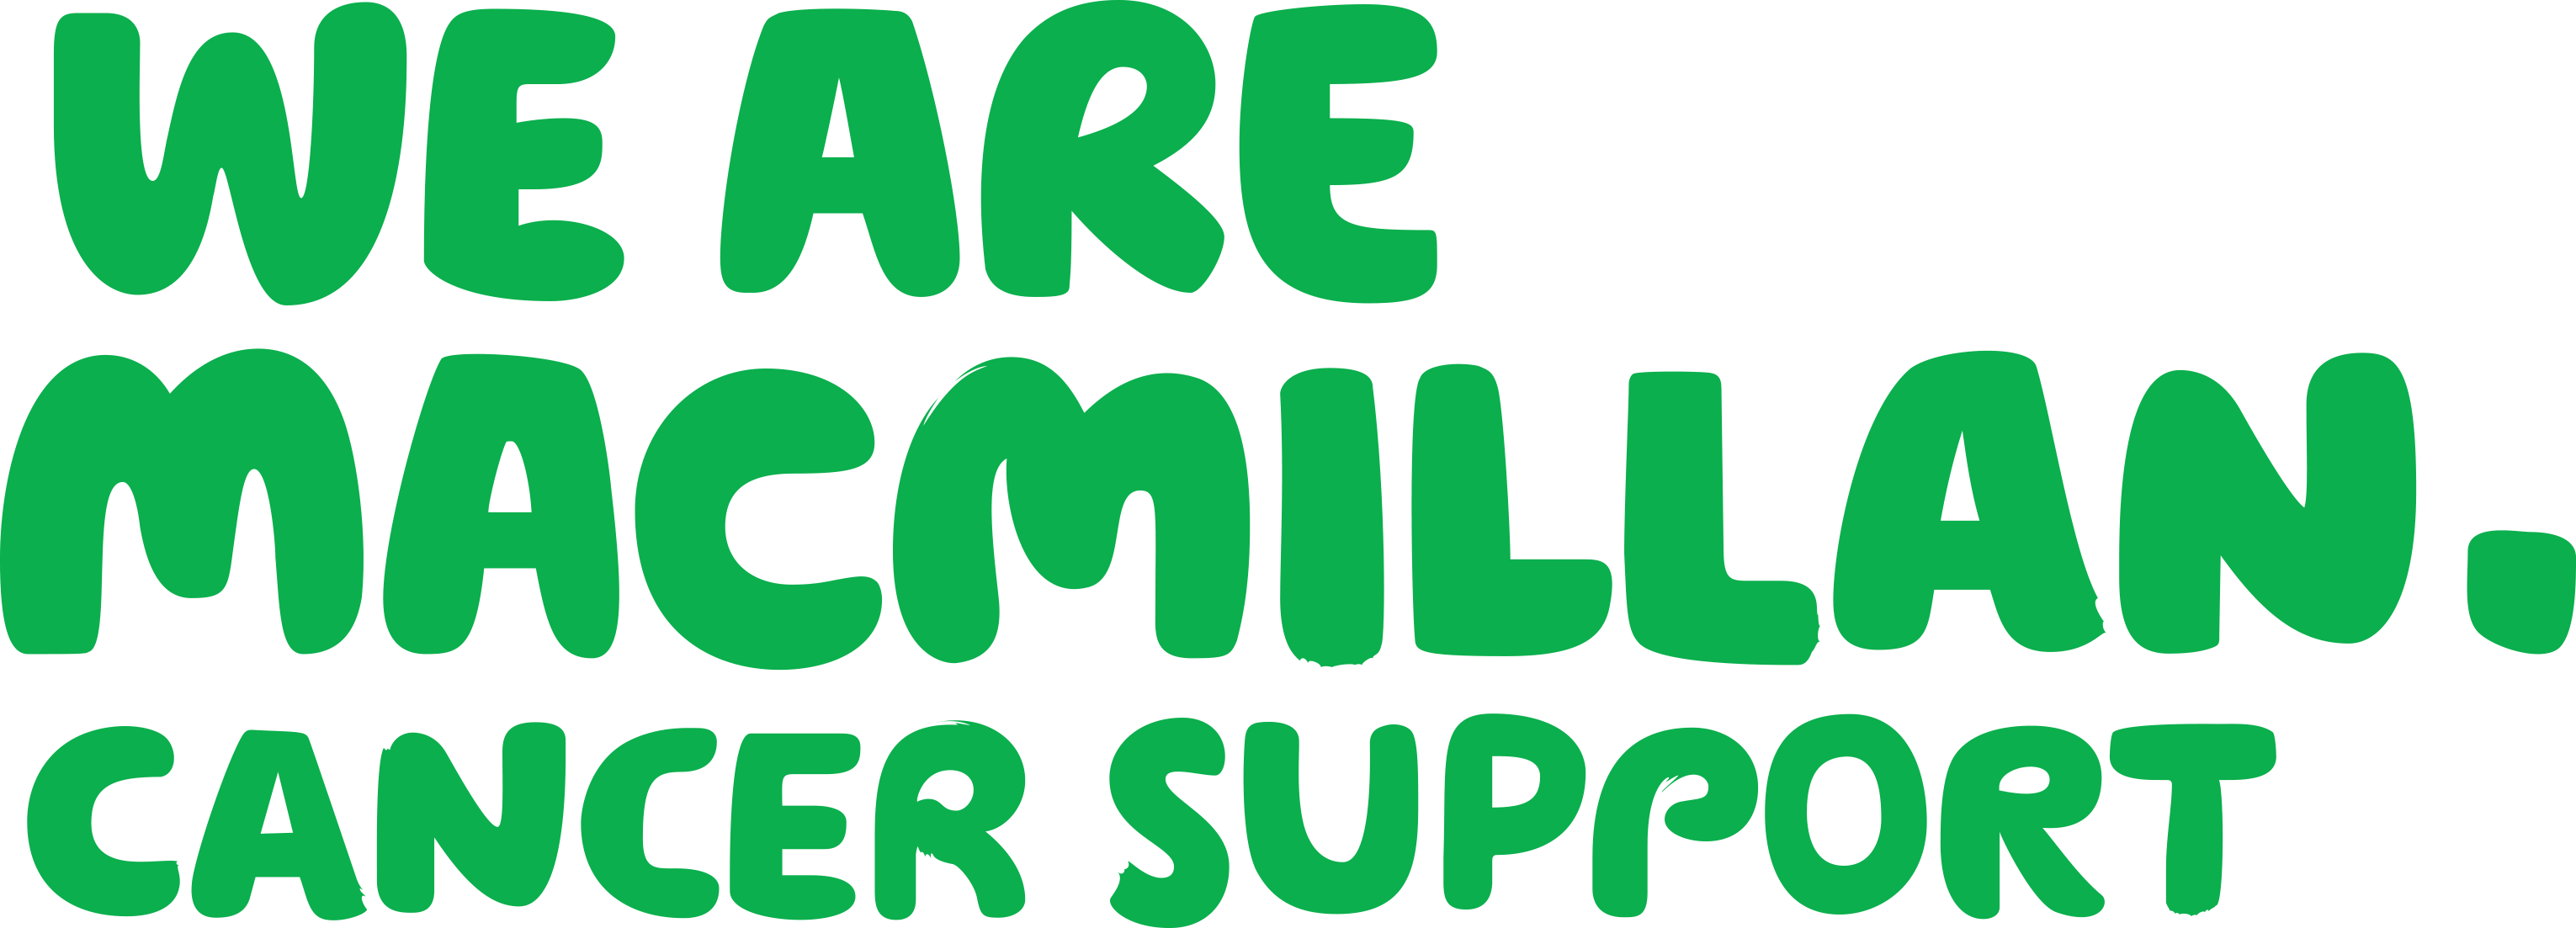 Macmillan_Cancer_Support